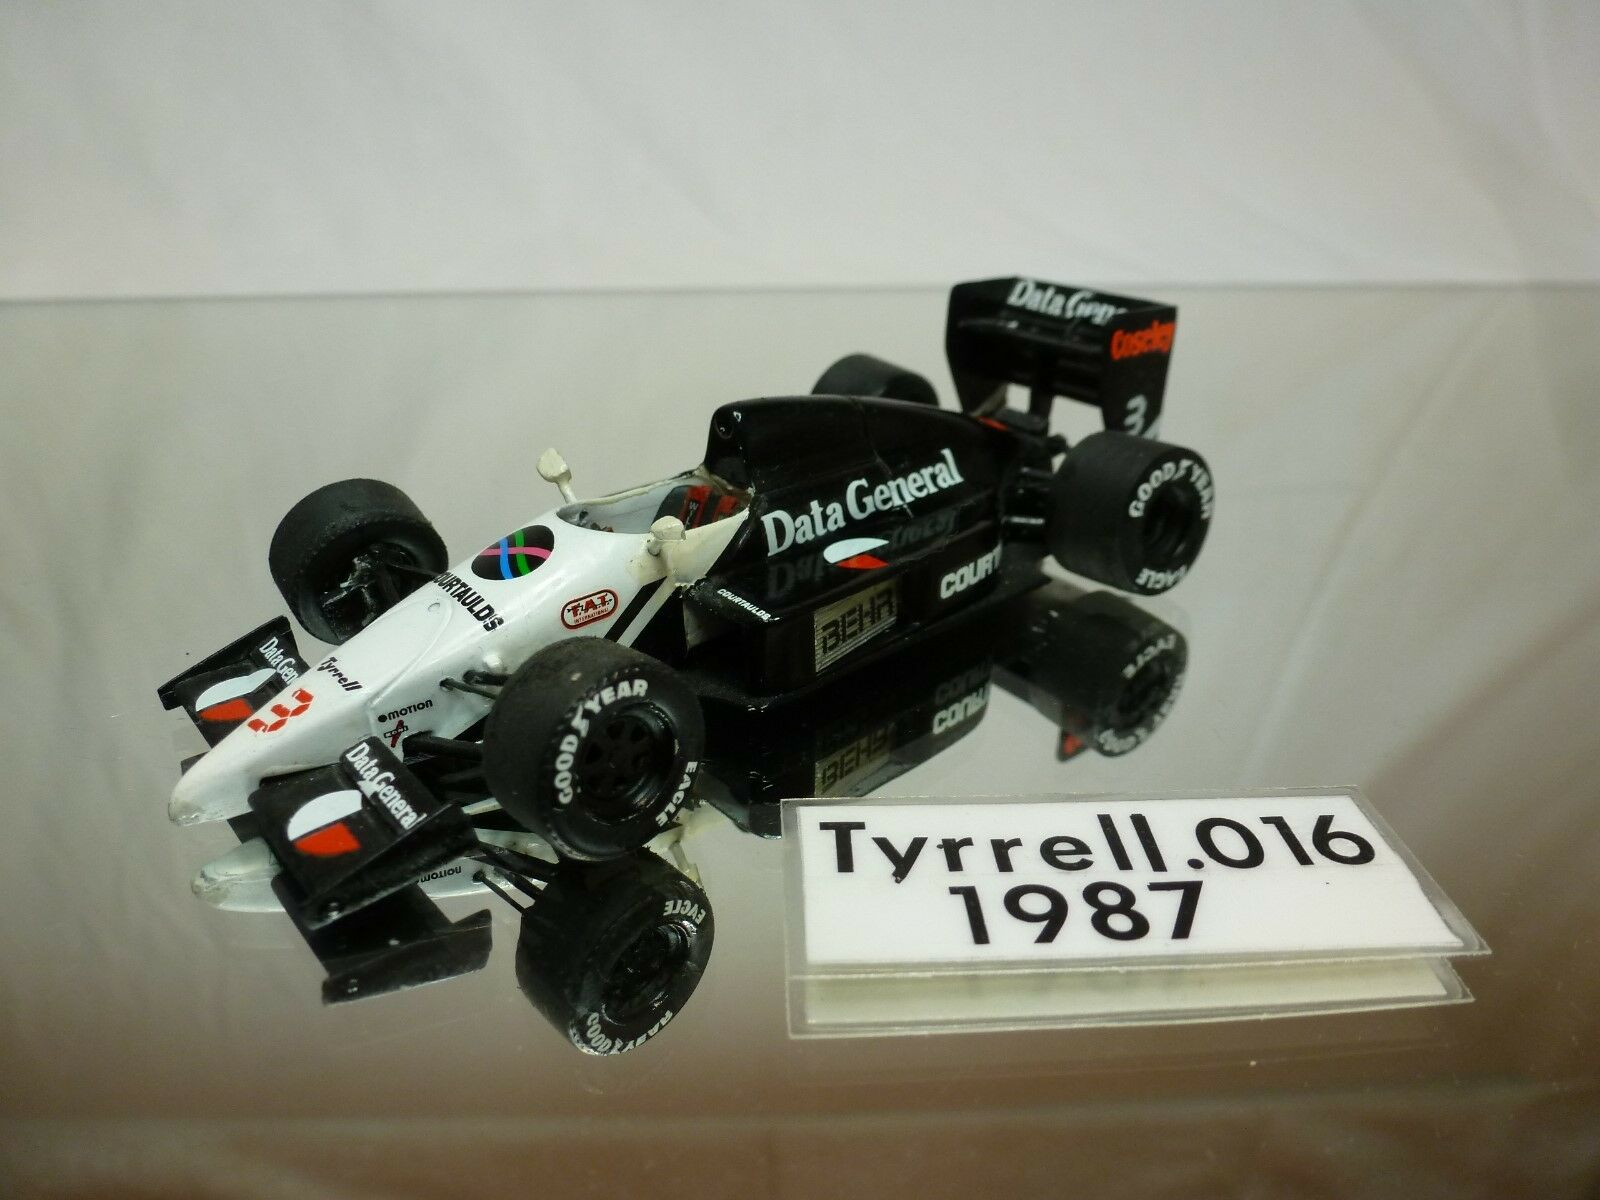 MERI TAMEO  - TYRRELL 016 - VERY RARE -  KIT (built)  F1 1 43 - NICE CONDITION